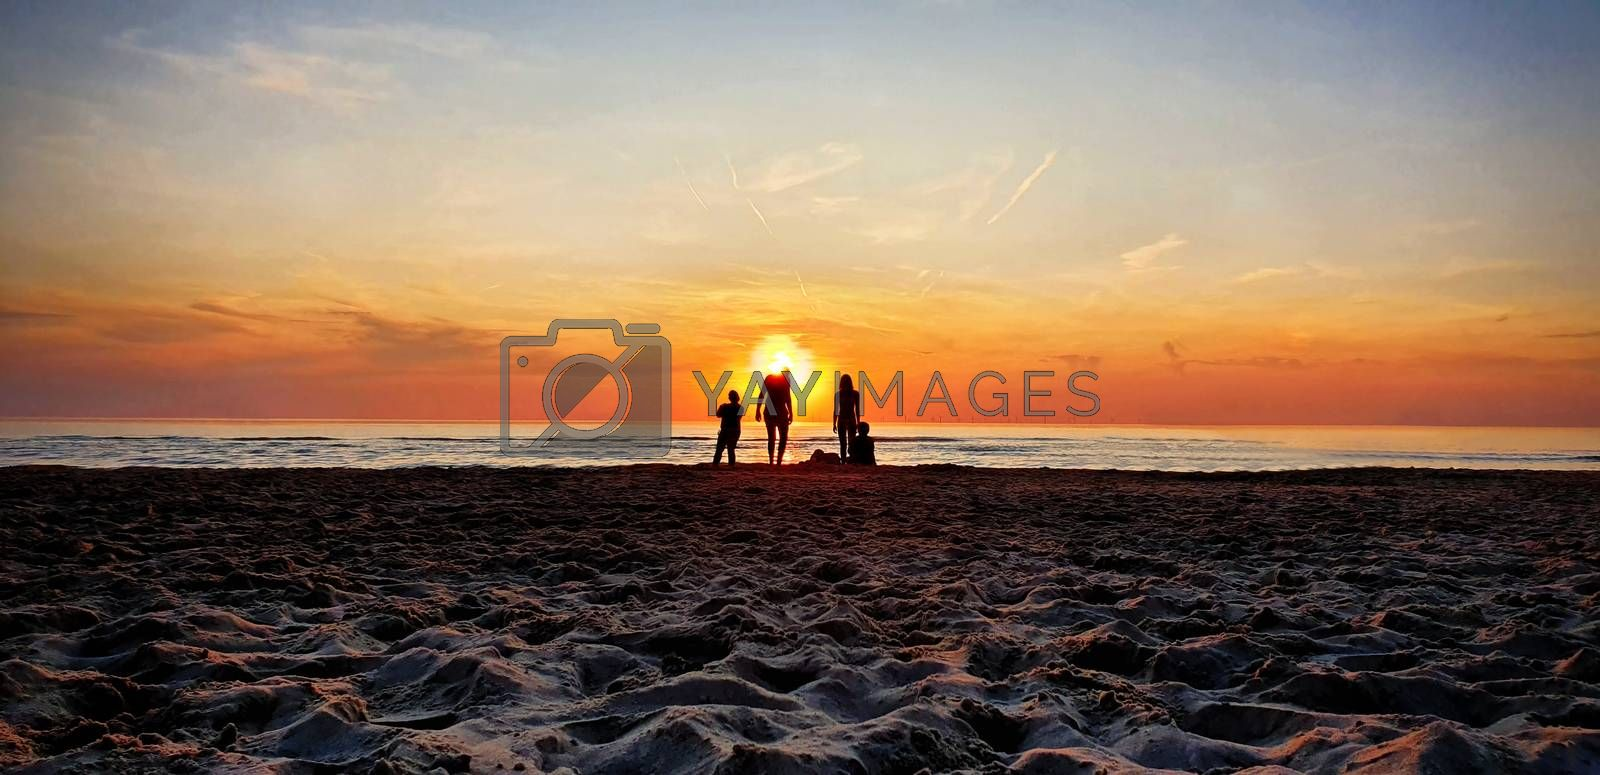 Silhouettes of people at a sandy beach enjoying the golden hour, watching the sunset.